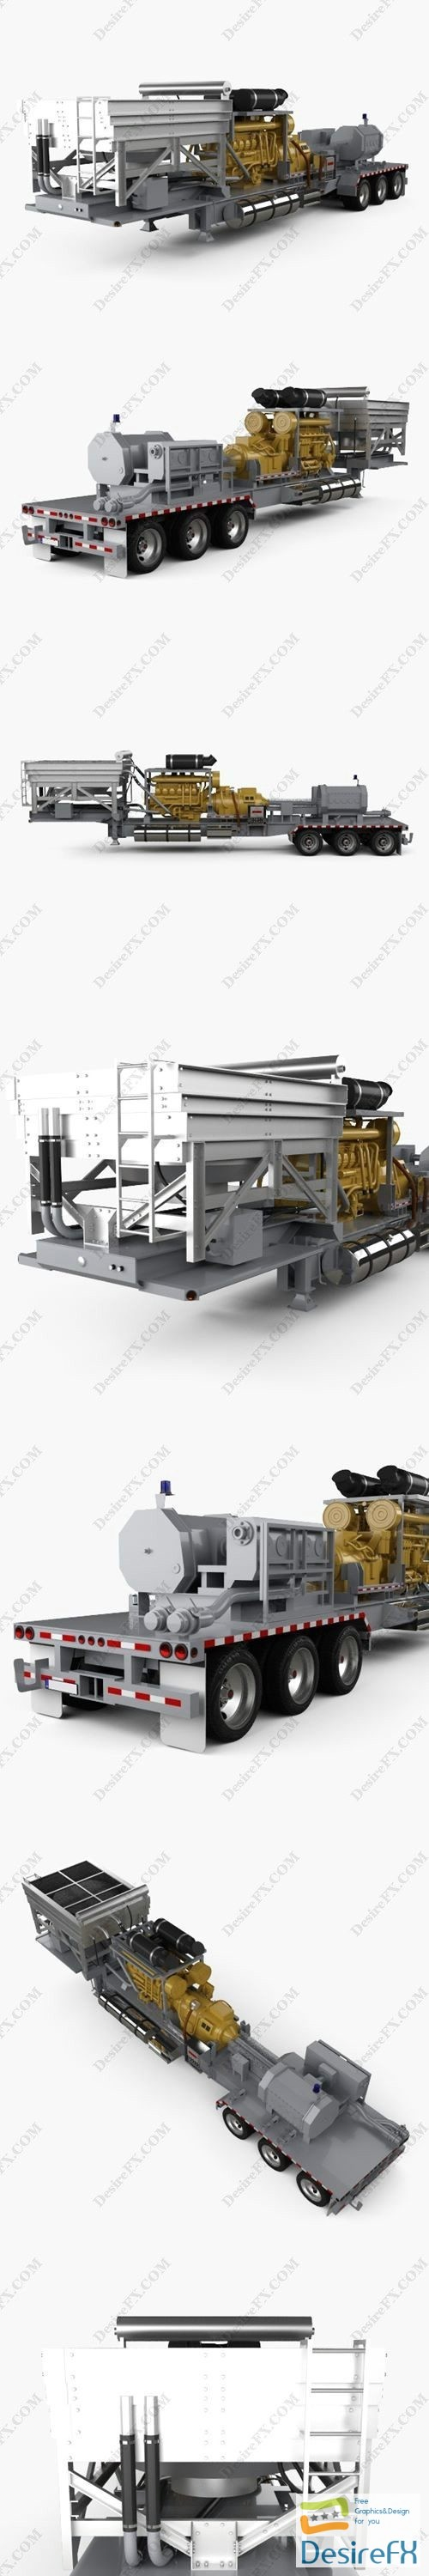 3d-models - Trailer Semi Caterpillar Fracturing Unit 2018 3D Model